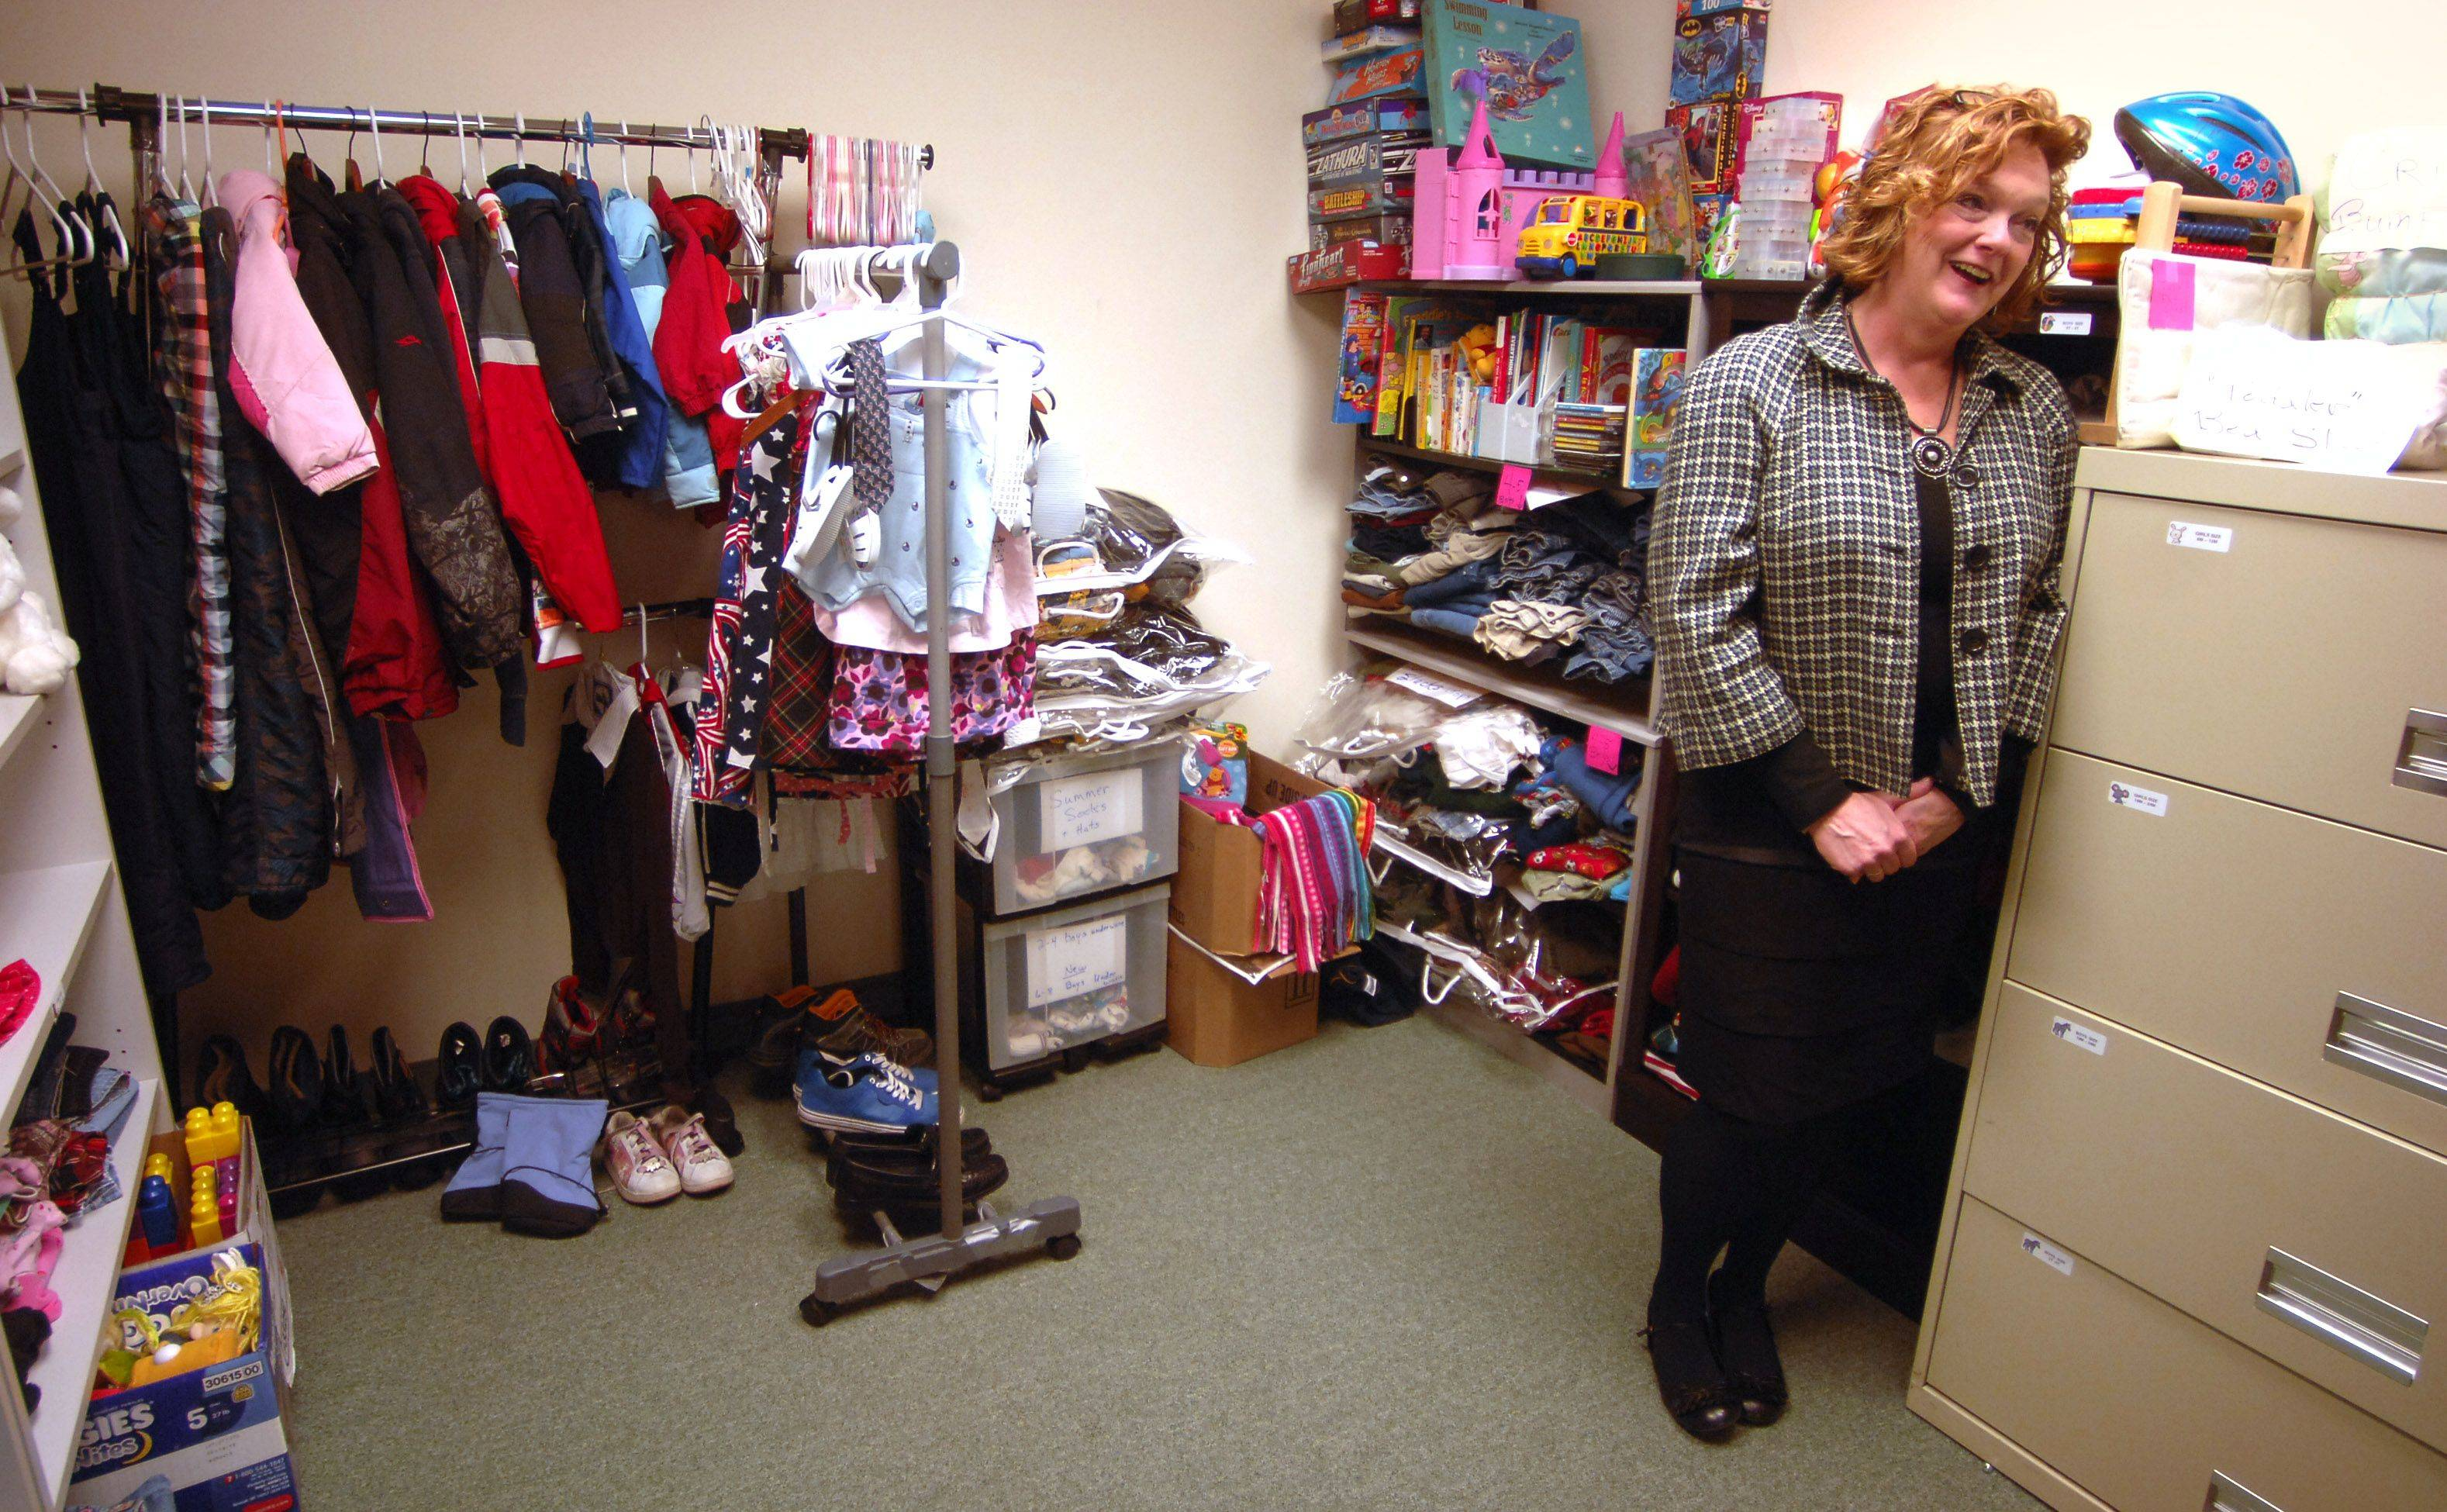 Donna Riemer, director of compassion ministry at Alpine Chapel, discusses the Lake Zurich church's Thrive ministry, which provides clothing and other services to those in need.